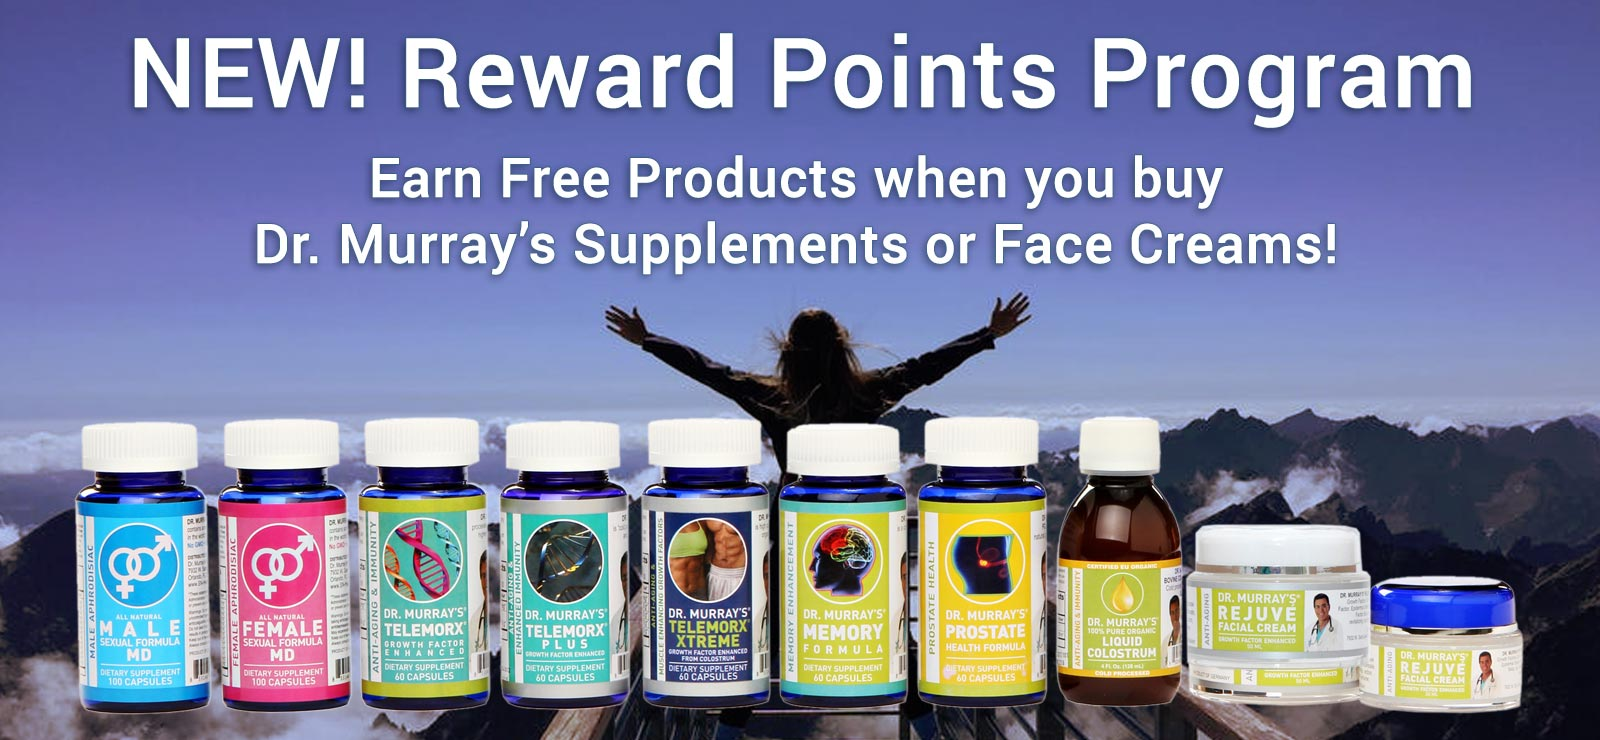 Start earning reward points today on Dr. Murray's Online when you buy our supplements and face creams!